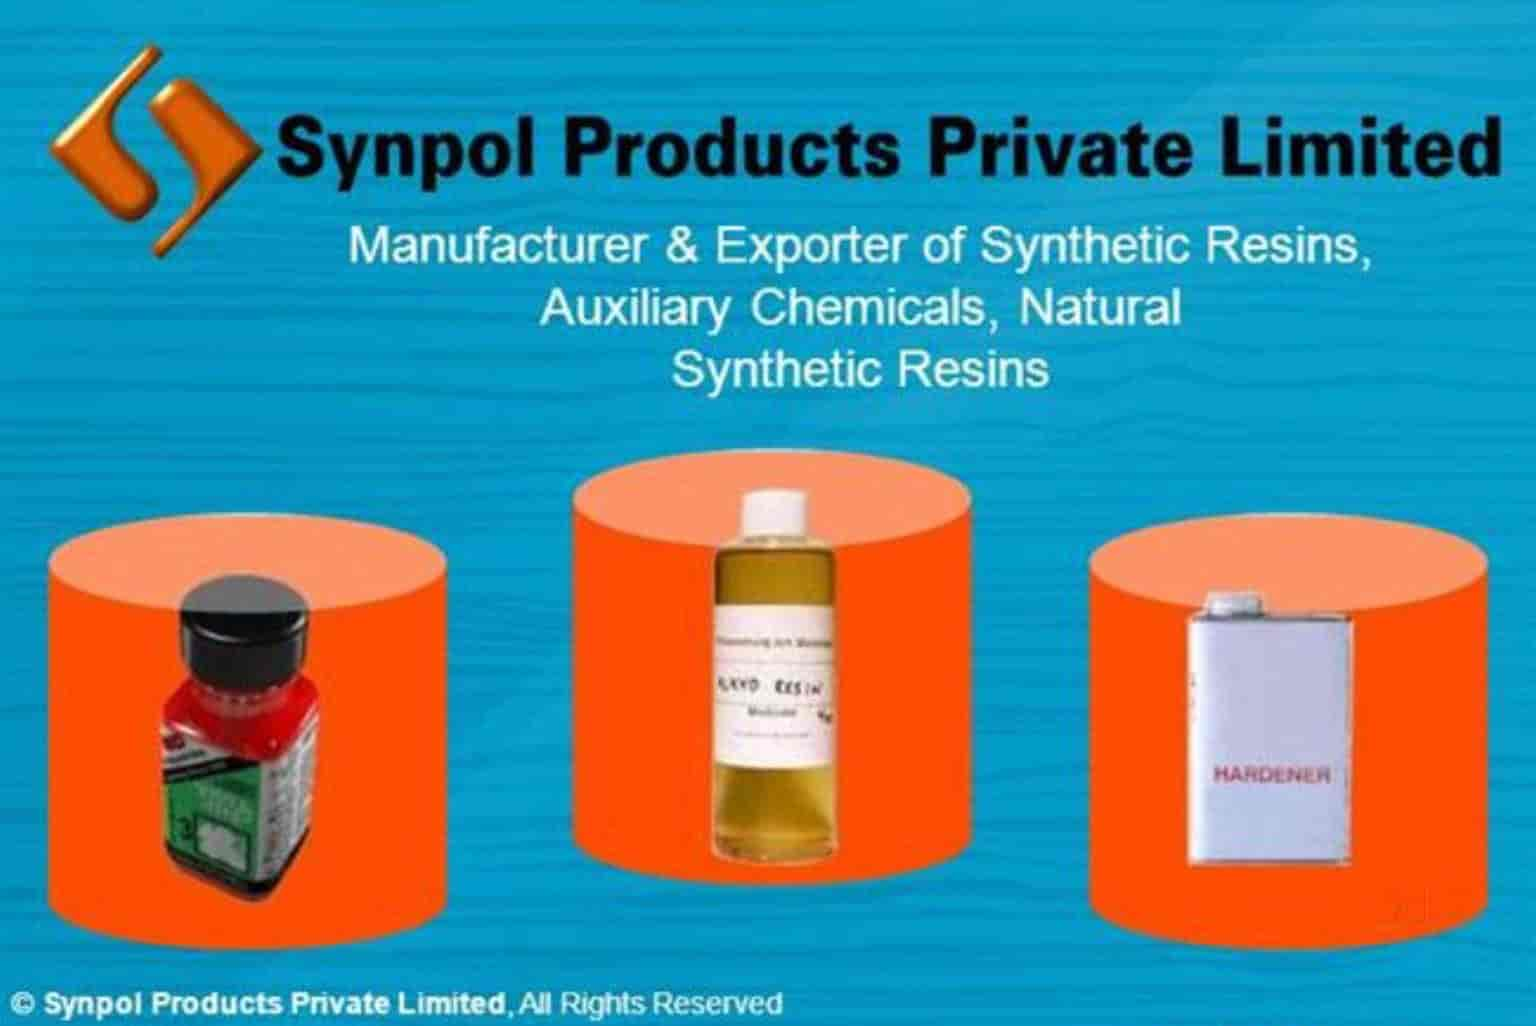 Synpol Products Pvt Ltd, Odhav - Synthetic Resin Manufacturers in